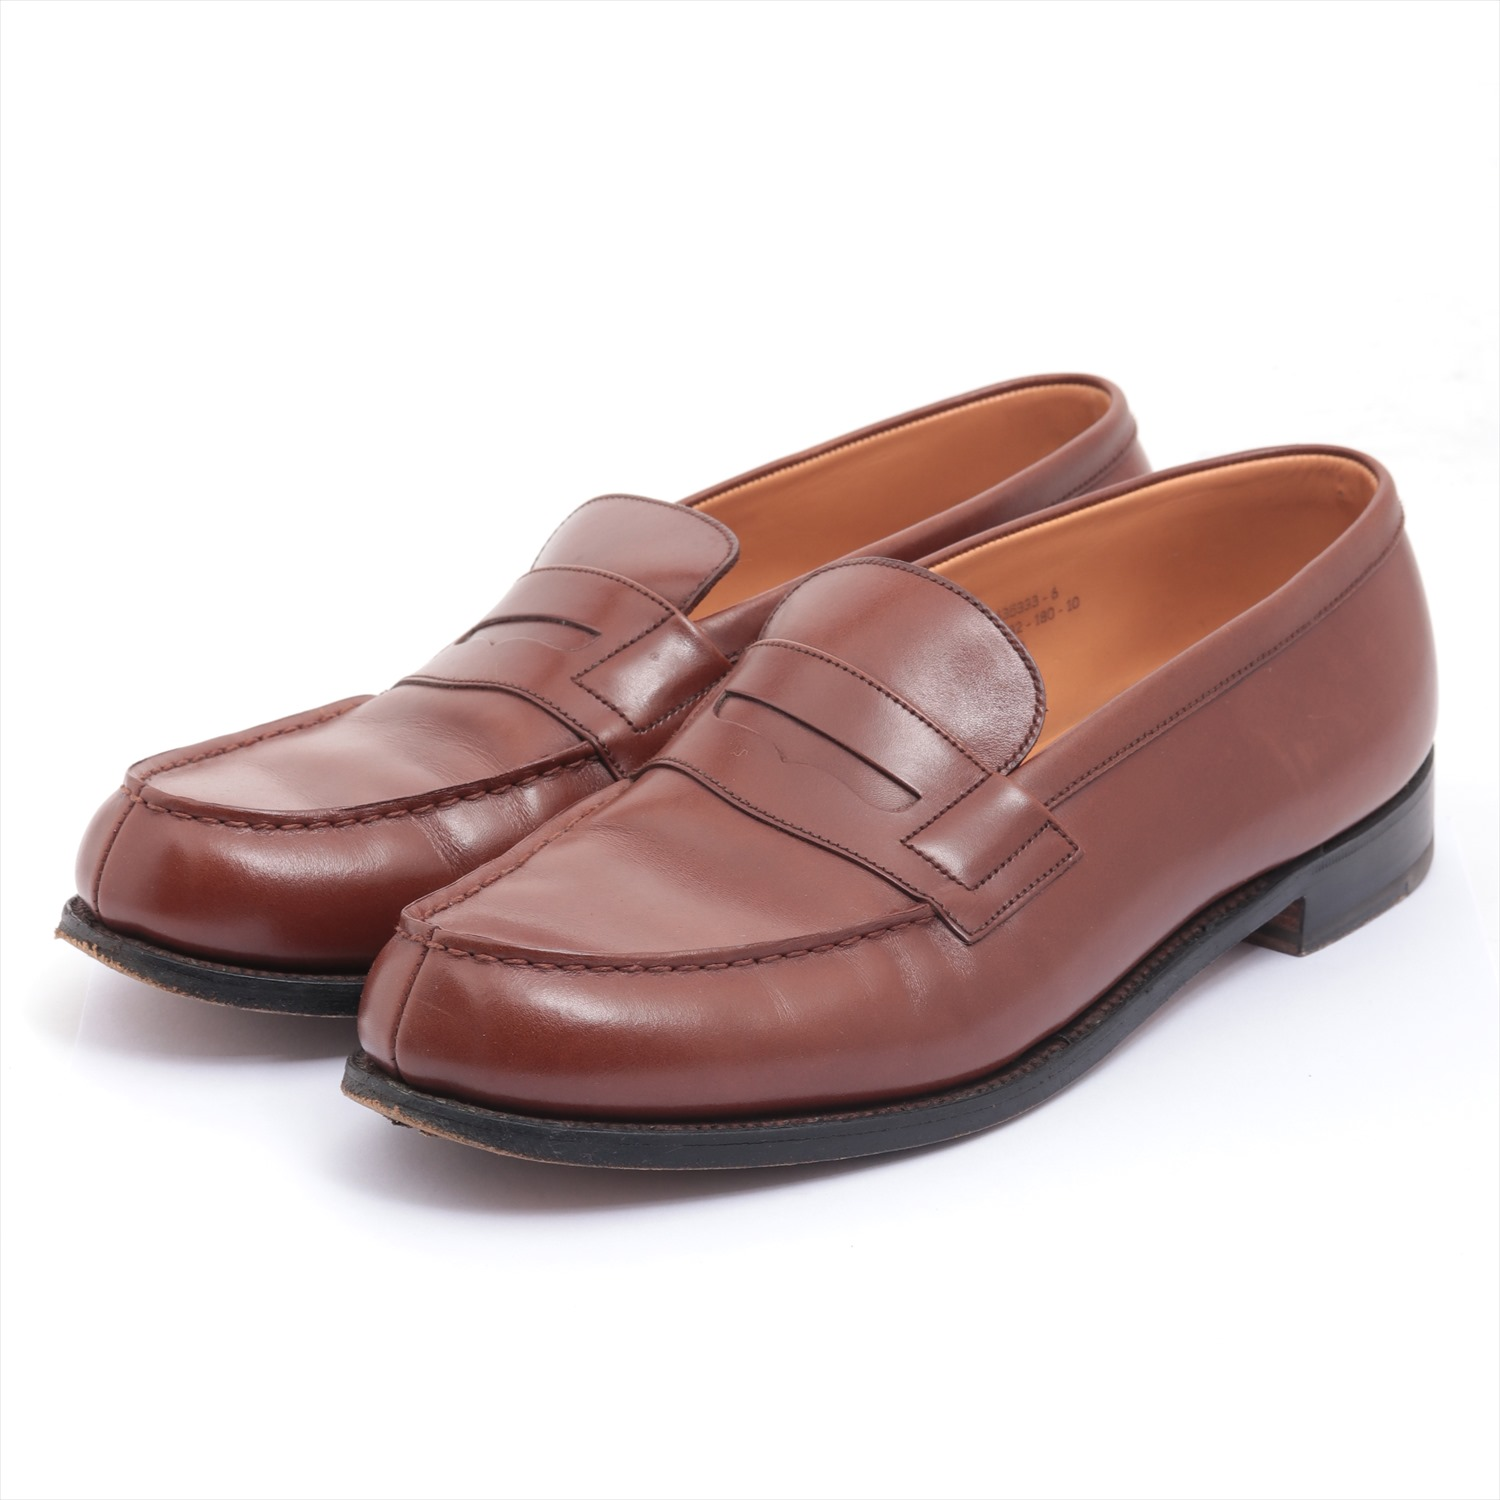 [Used article] J. M. Weston leather loafers 8 Men's Brown